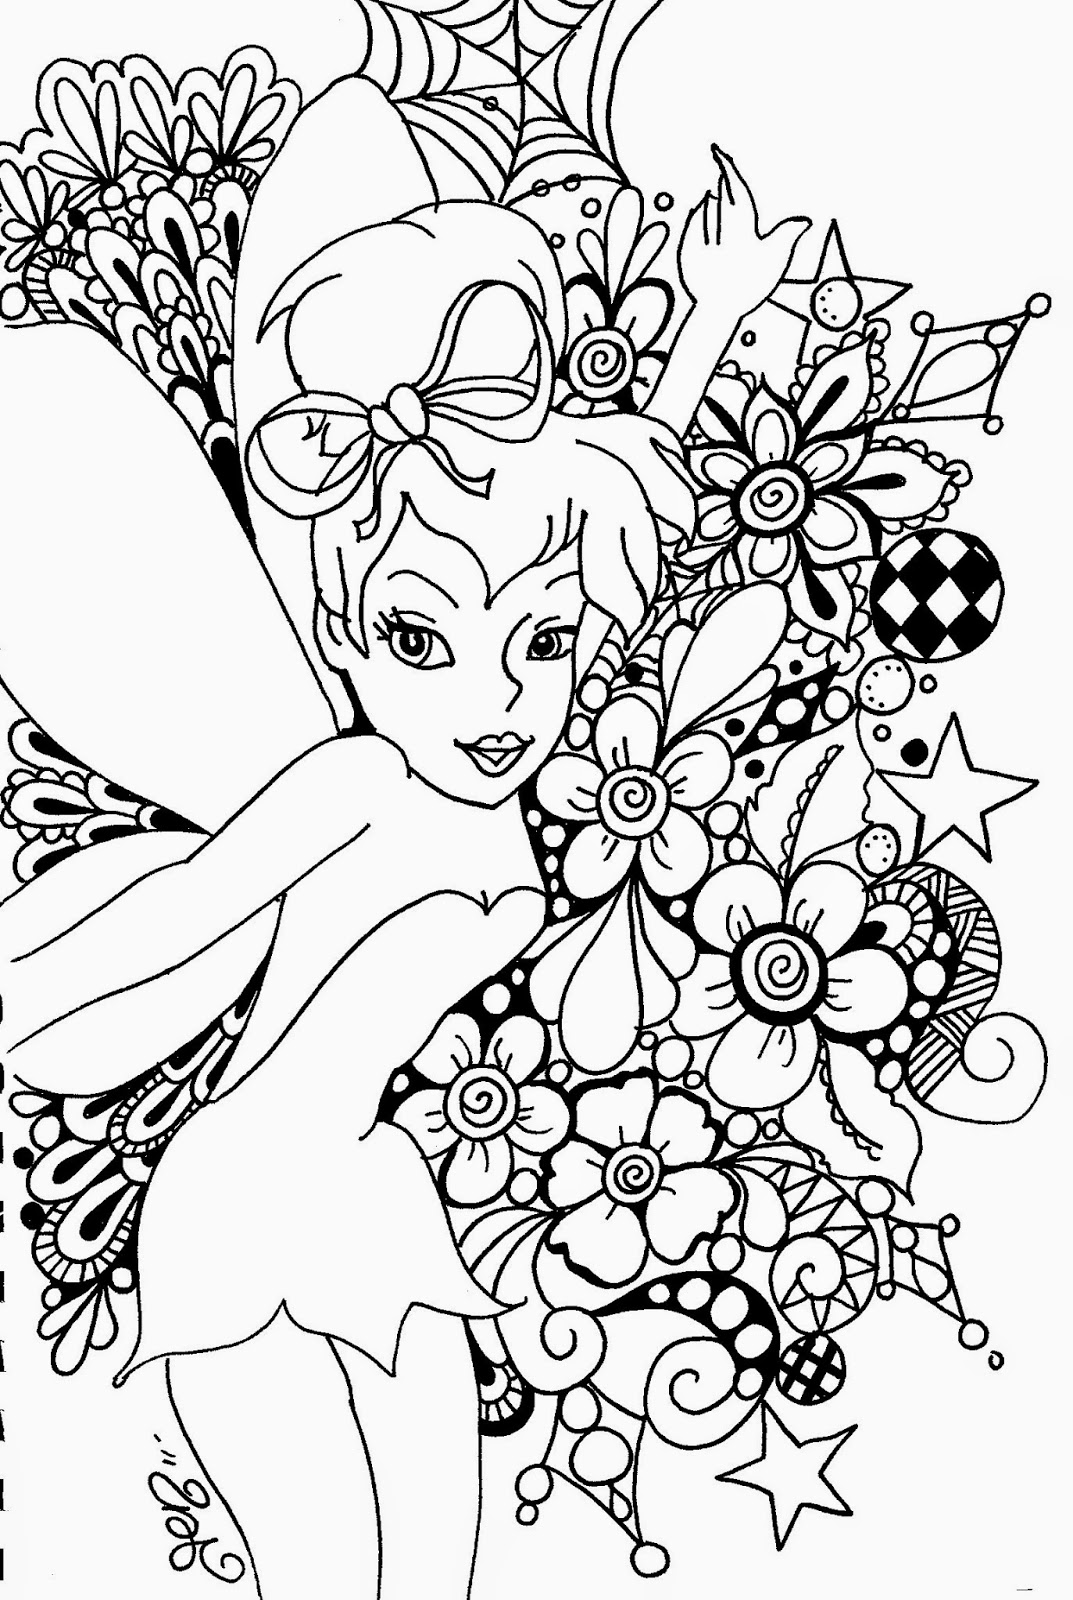 tinkerbell coloring pages free printable coloring pages tinkerbell coloring pages and clip art free pages coloring tinkerbell printable